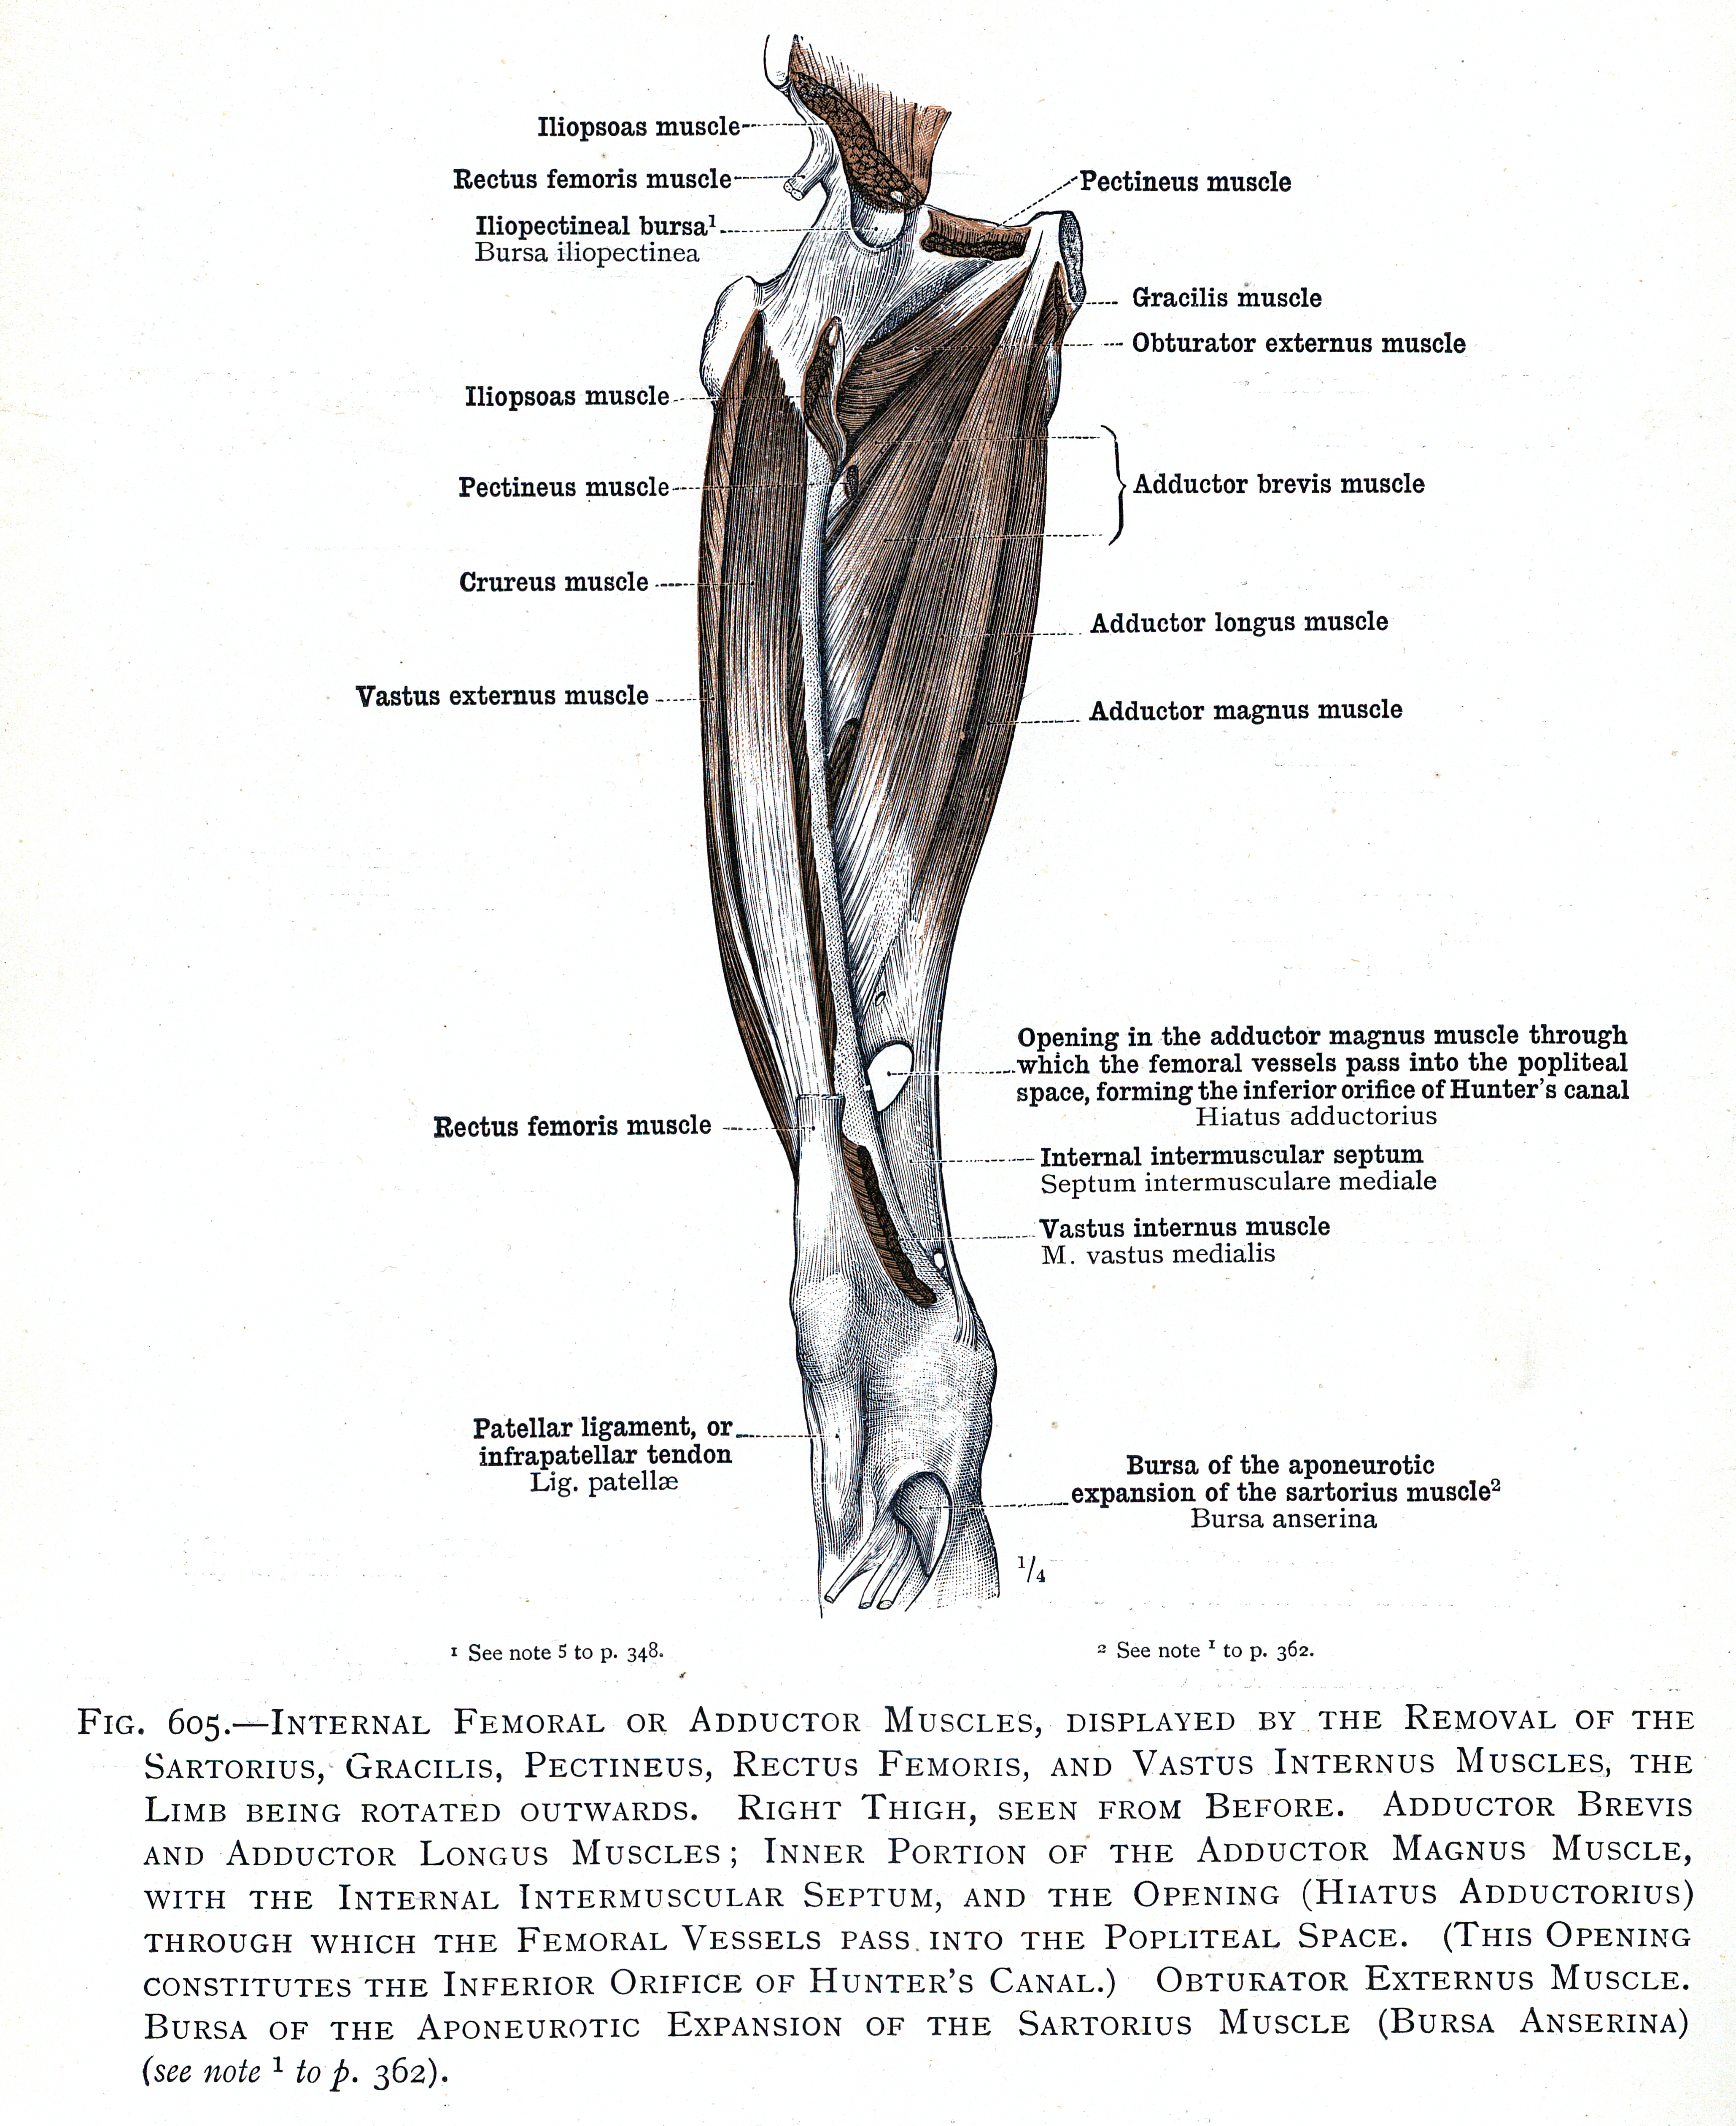 605. Internal femoral or adductor muscles. Adductor brevis and ...